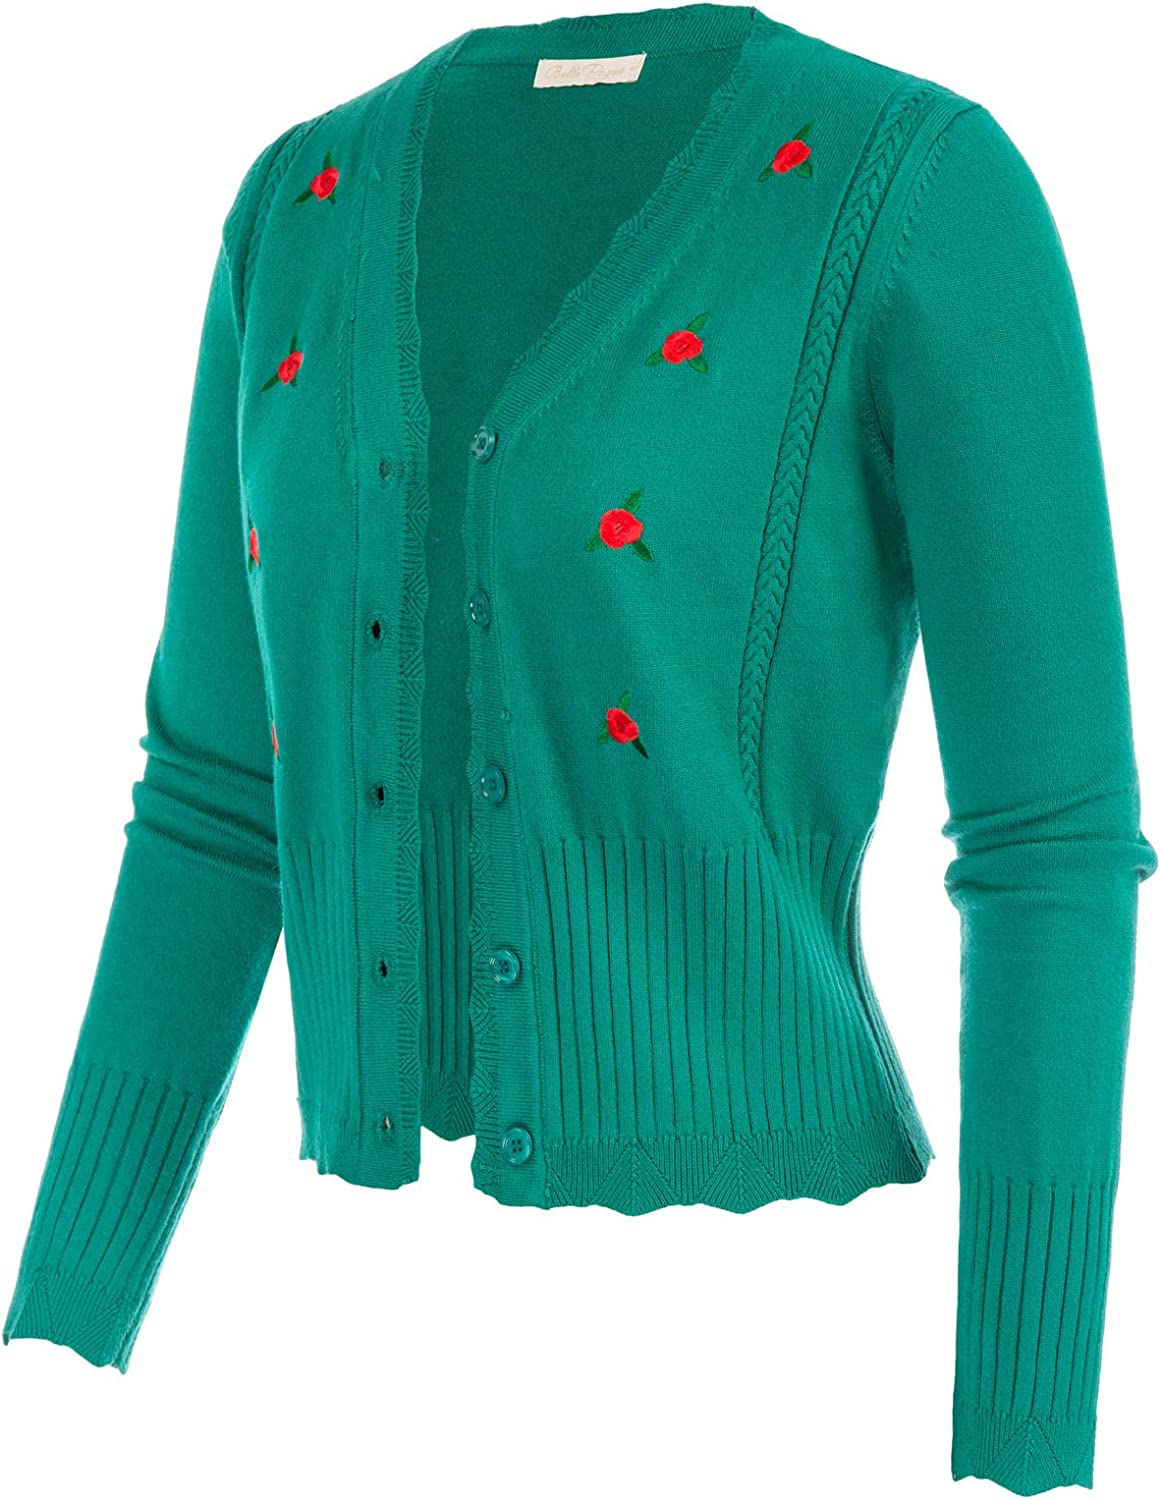 Belle Poque Women Vintage Floral Embroidery Cardigan Soft V Neck Knit Cardigan Sweater